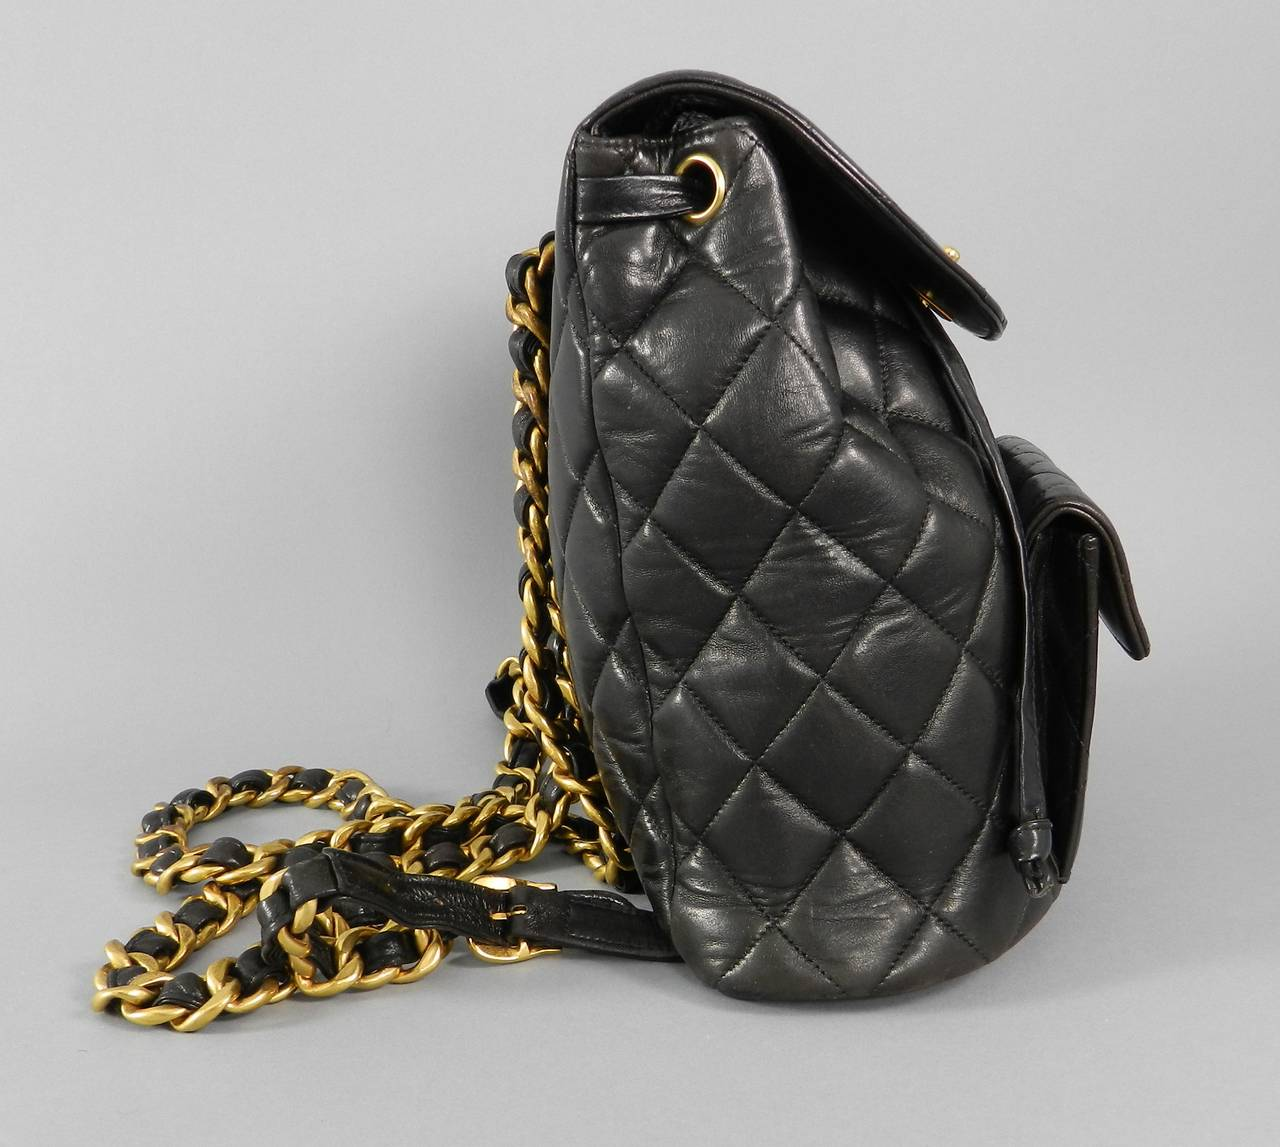 a2511872383f Chanel vintage 1996 black quilted soft lambskin leather backpack with gold  hardware. In excellent previously